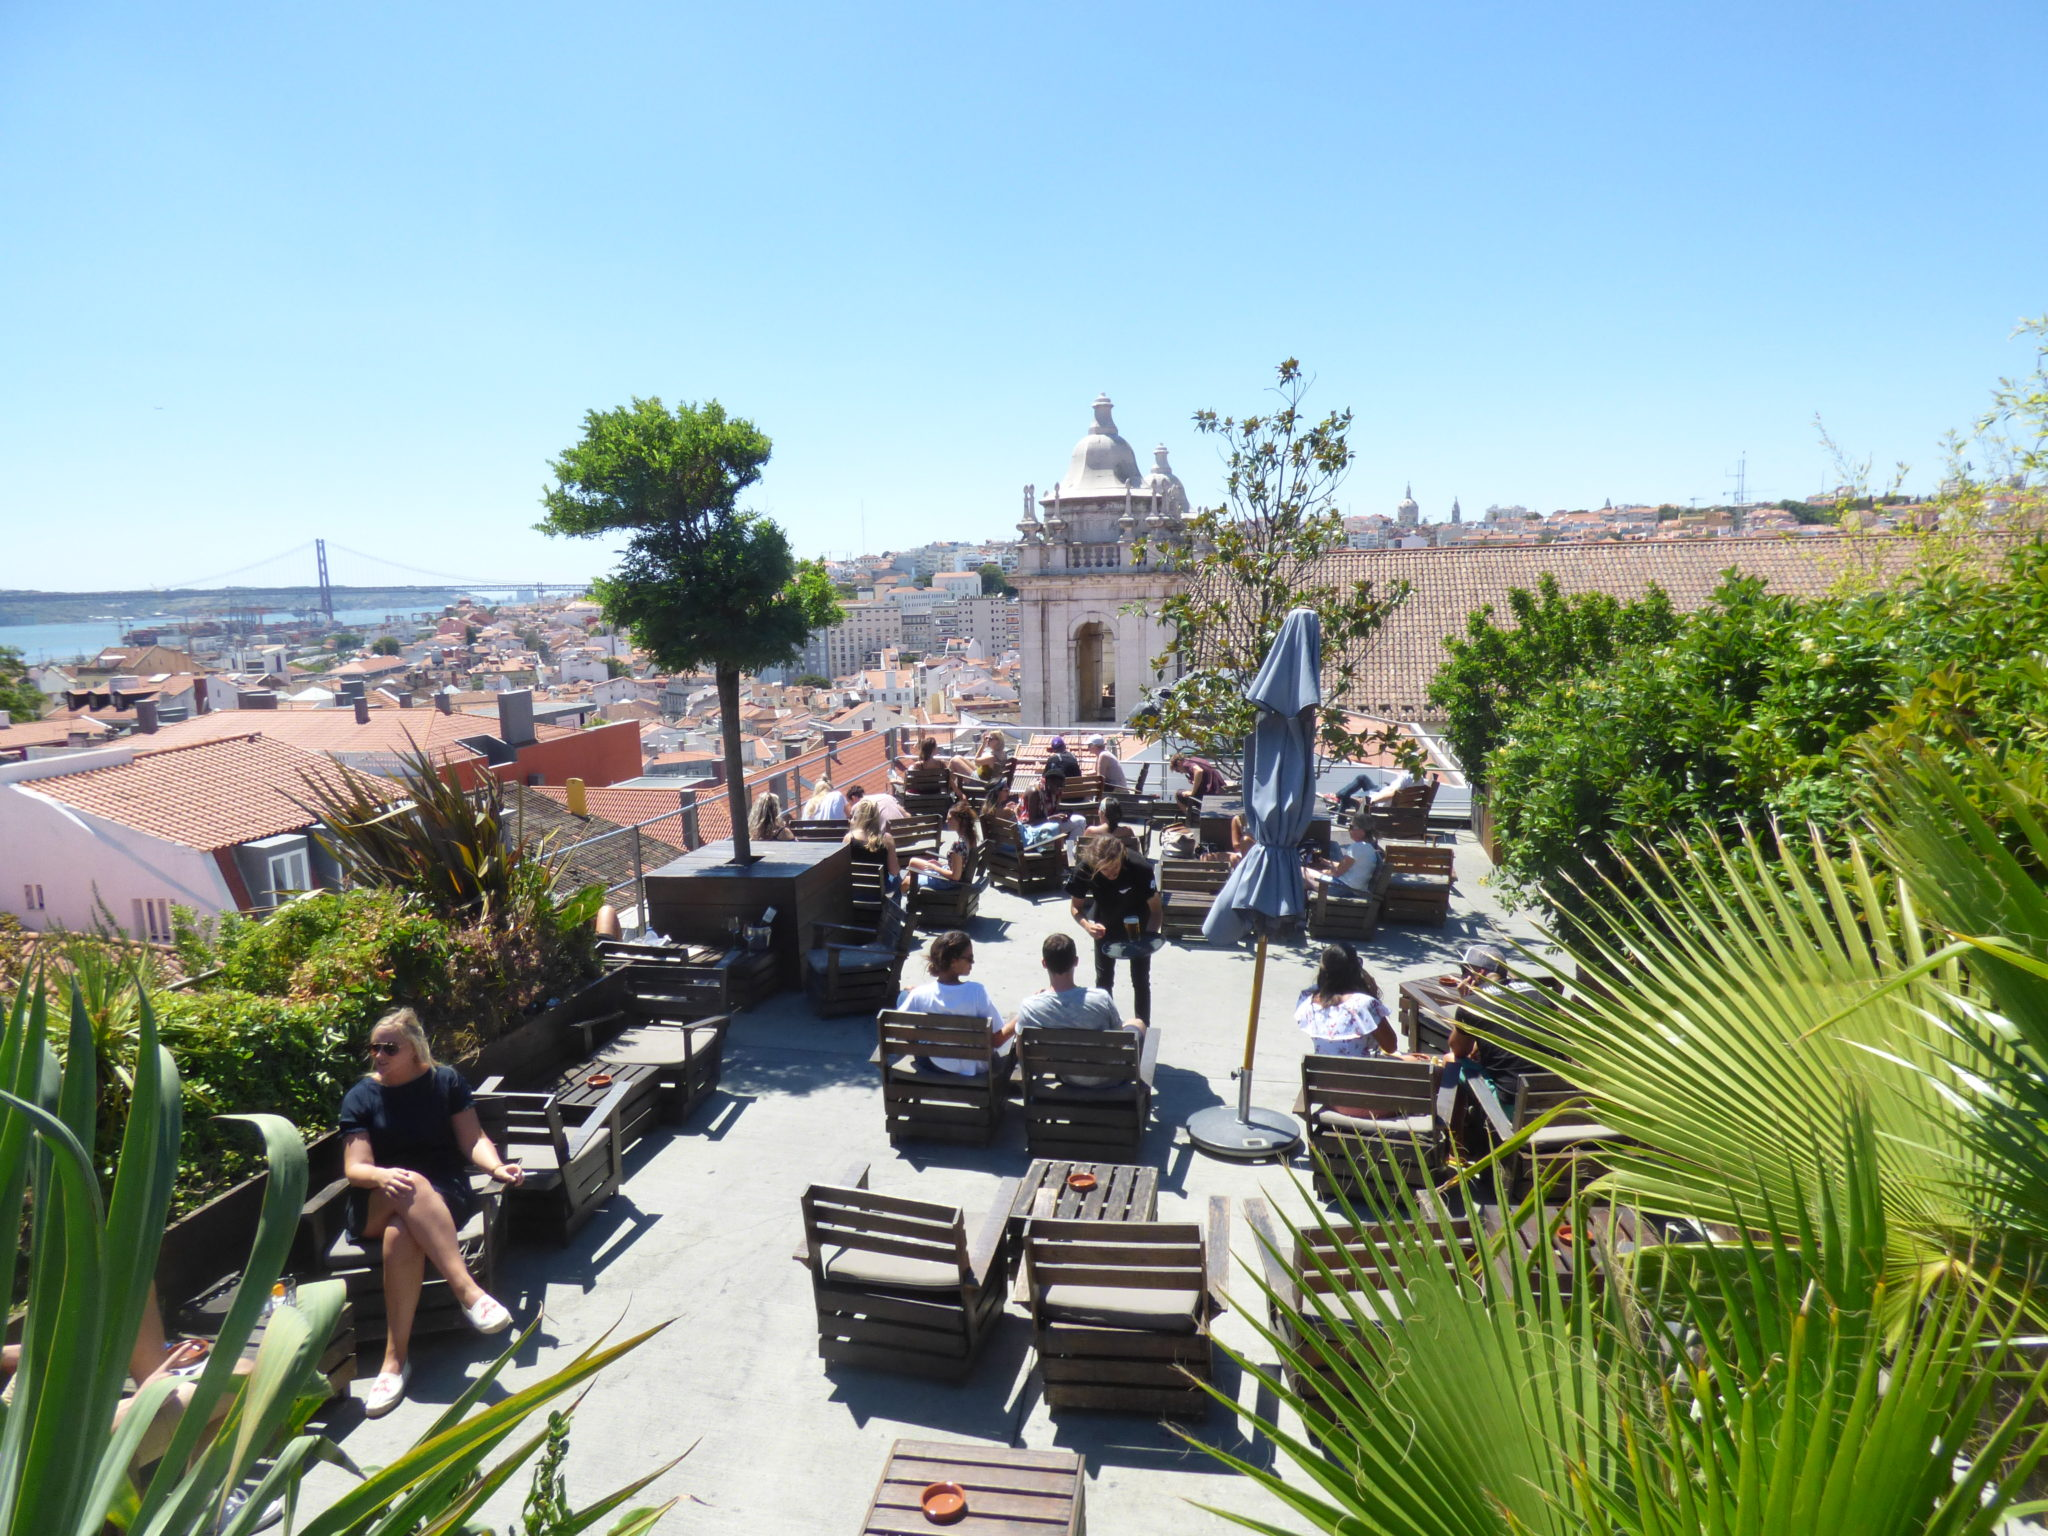 The Best Rooftop Bars in Portugal best rooftop bars in portugal The Best Rooftop Bars in Portugal PARK bar